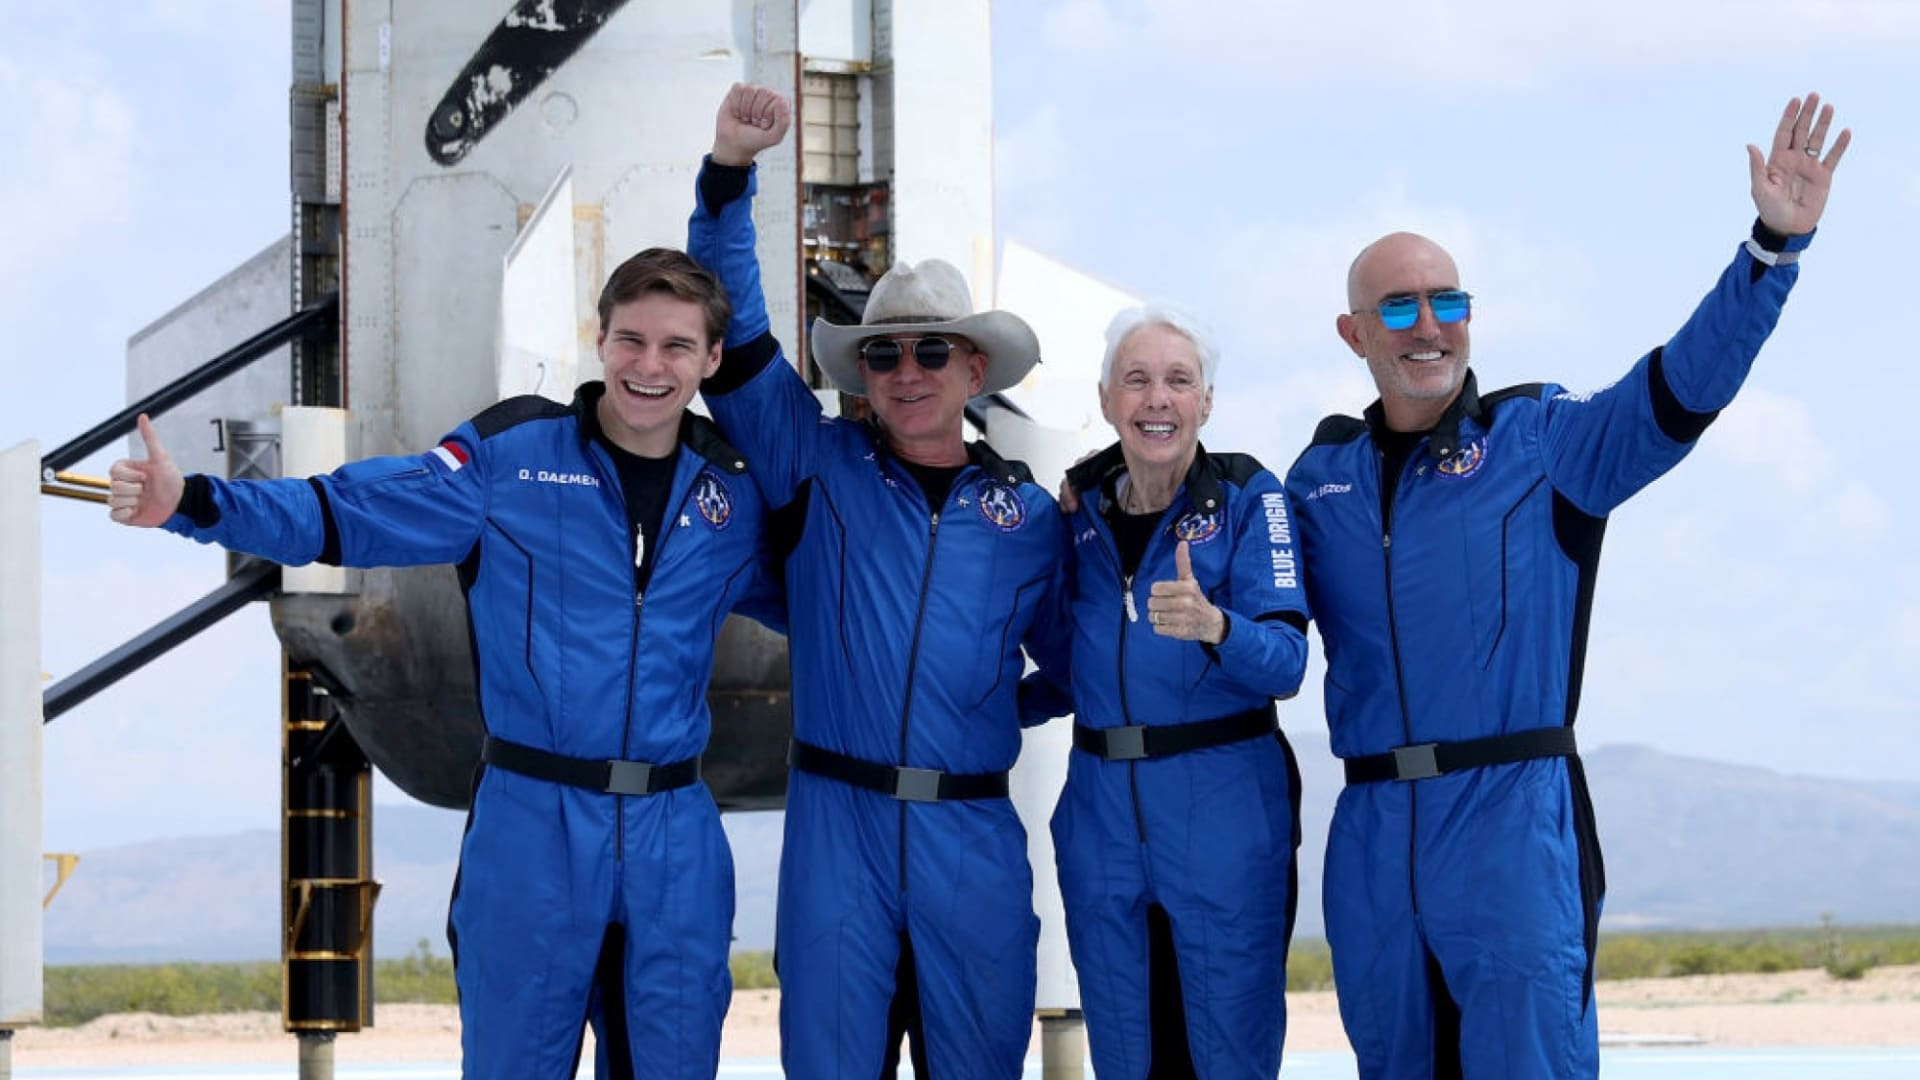 Jeff Bezos, second from left, with crew mates (l to r) Oliver Damen, Wally Funk, and Mark Bezos.